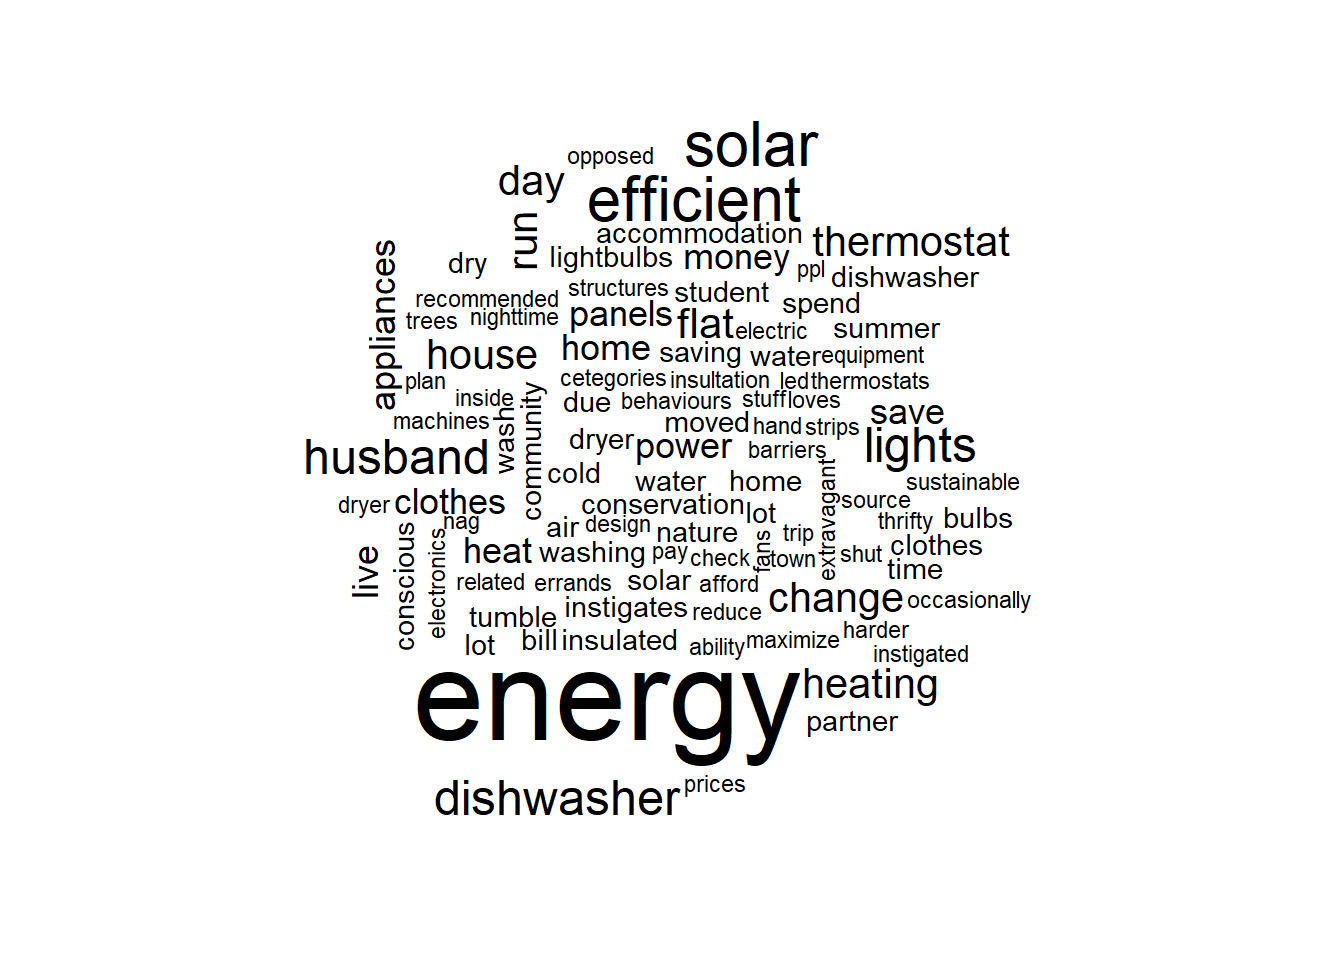 Word cloud of sustainability buzz words